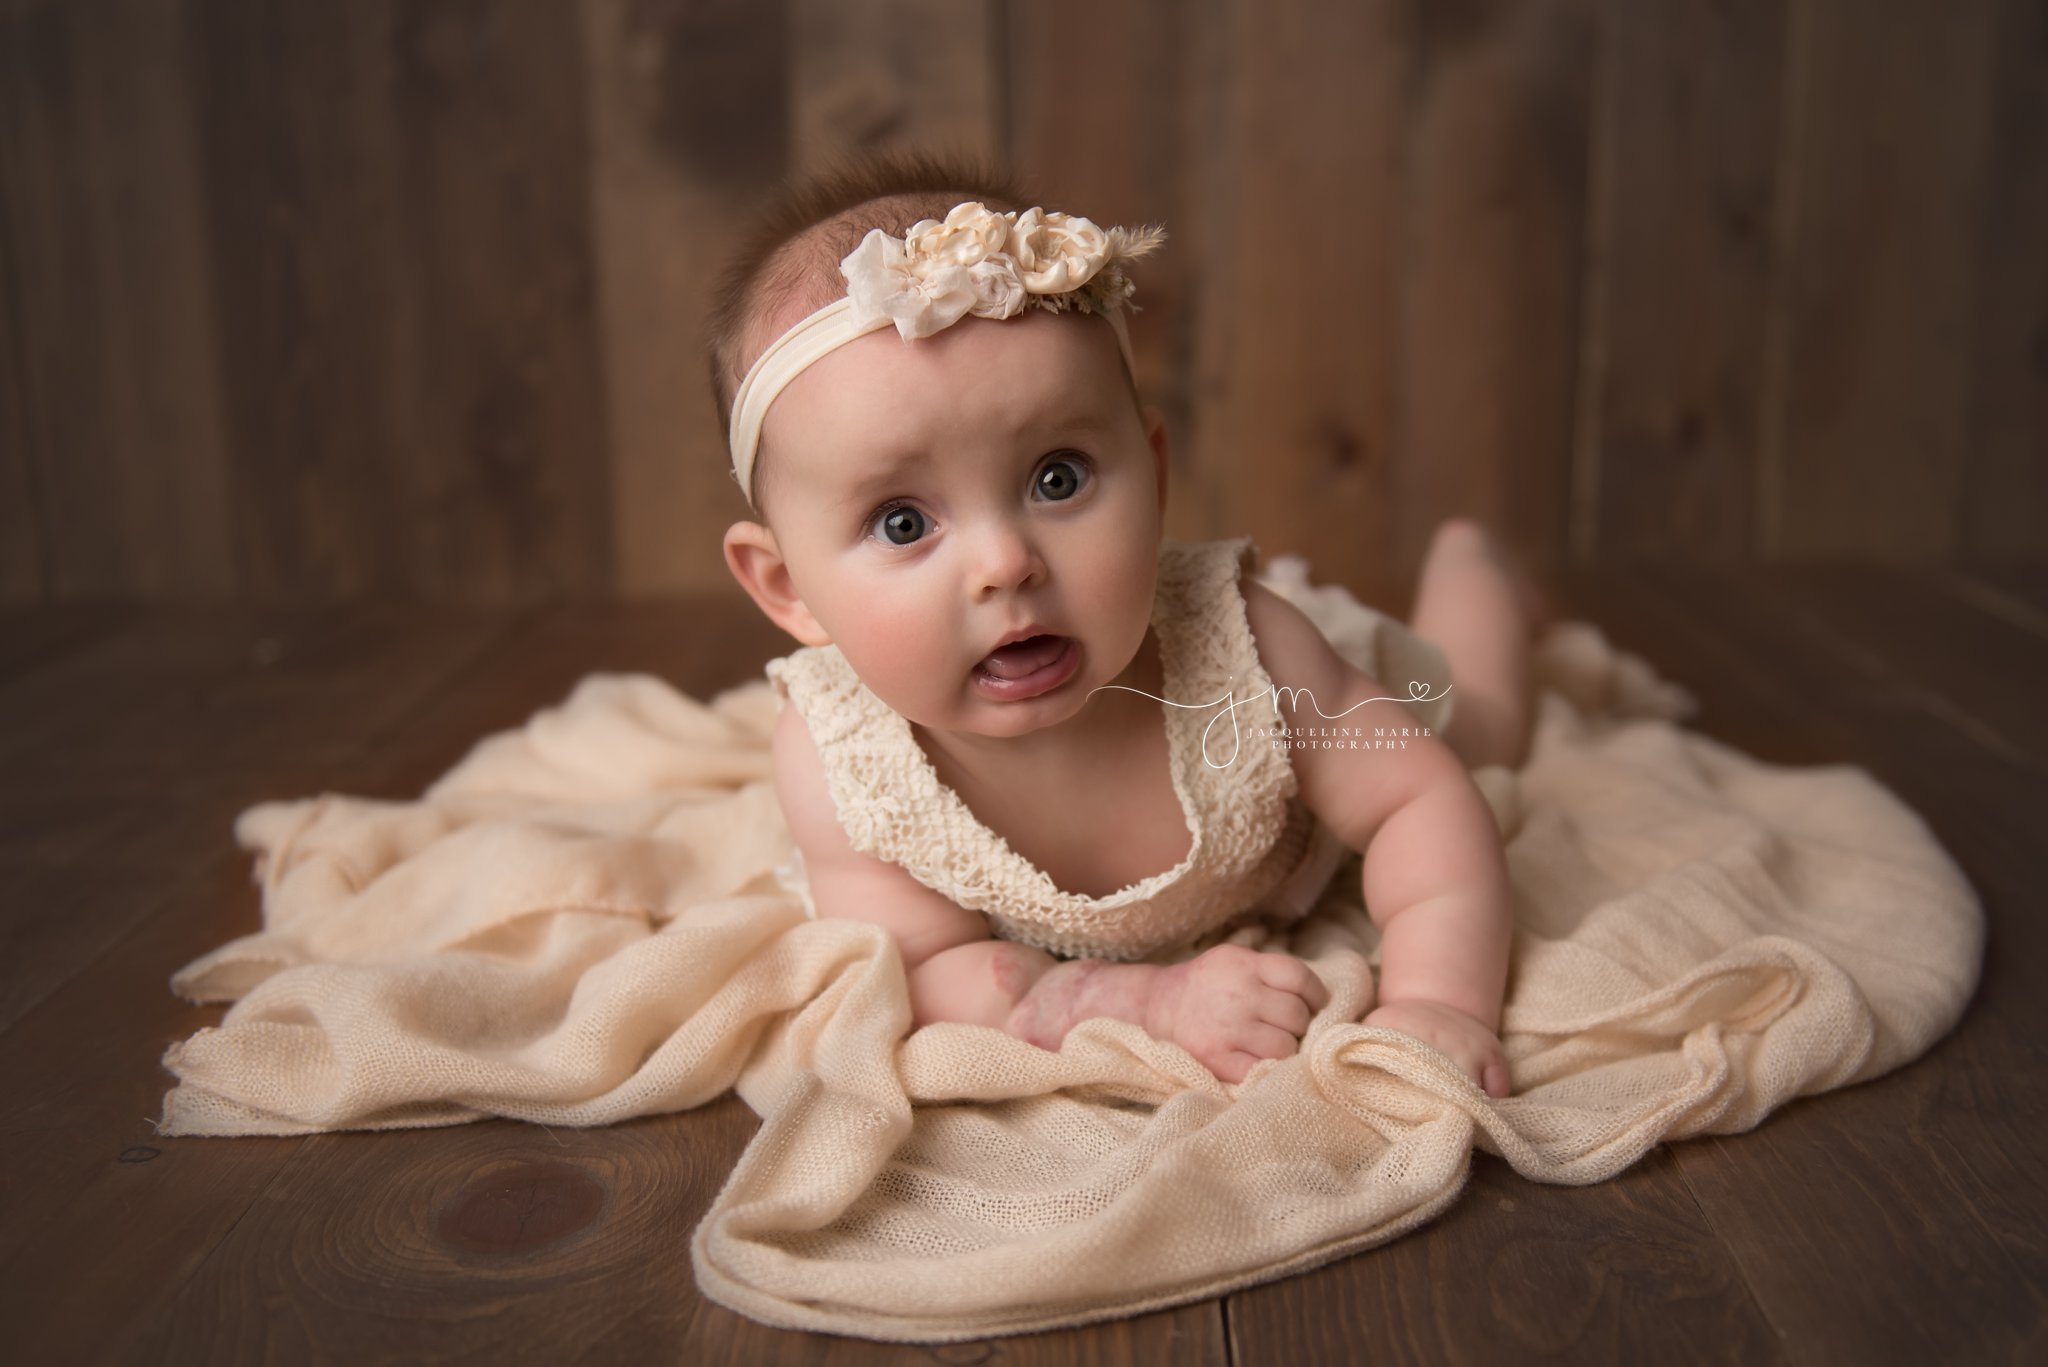 columbus ohio baby girl lays on her belly on blush pink scarf at columbus ohio baby photography studio